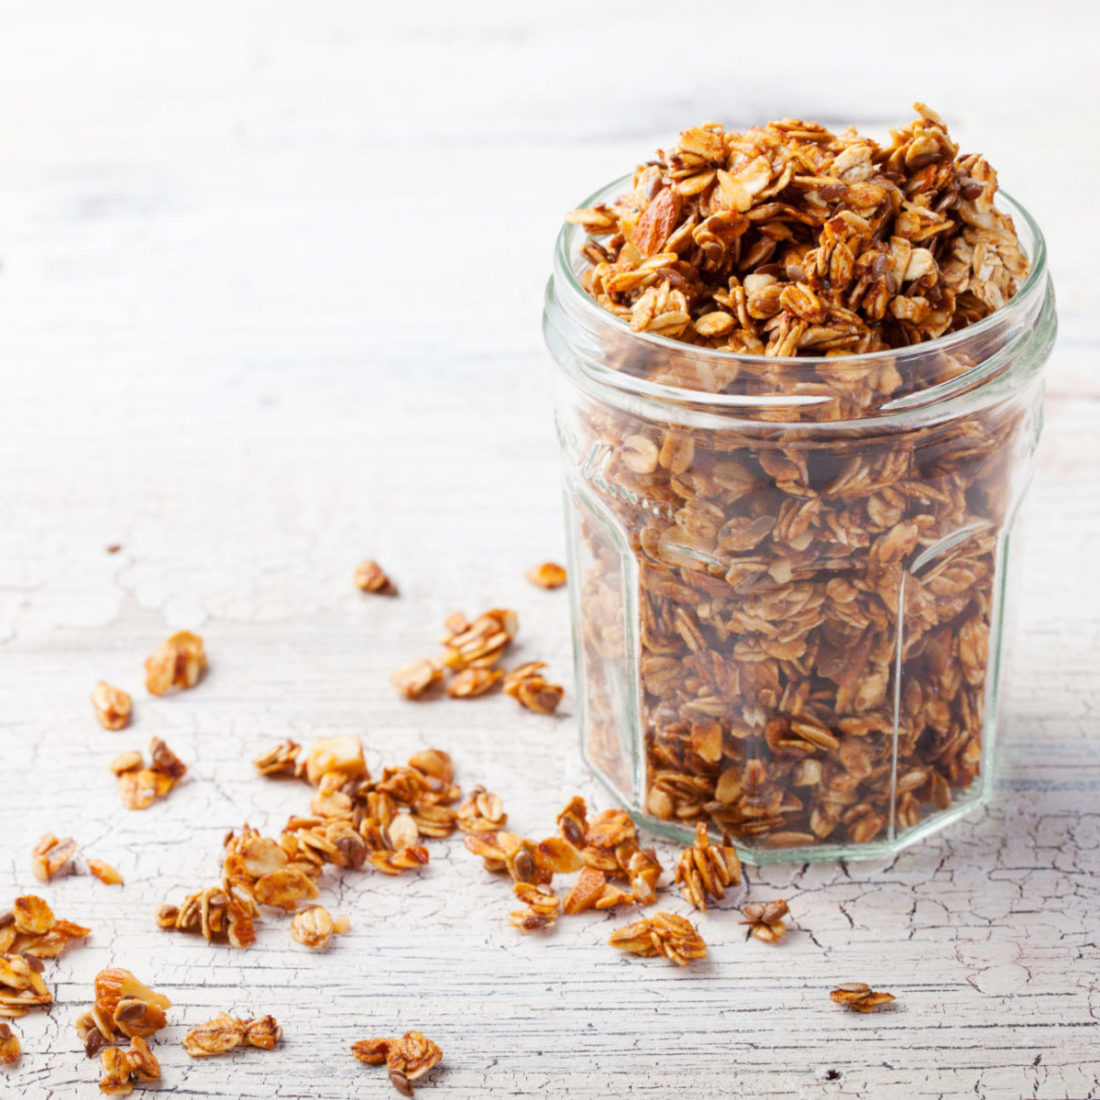 Healthy breakfast. Fresh granola, muesli in a glass jar. copy space.Organic oat,almond and sunflower seeds